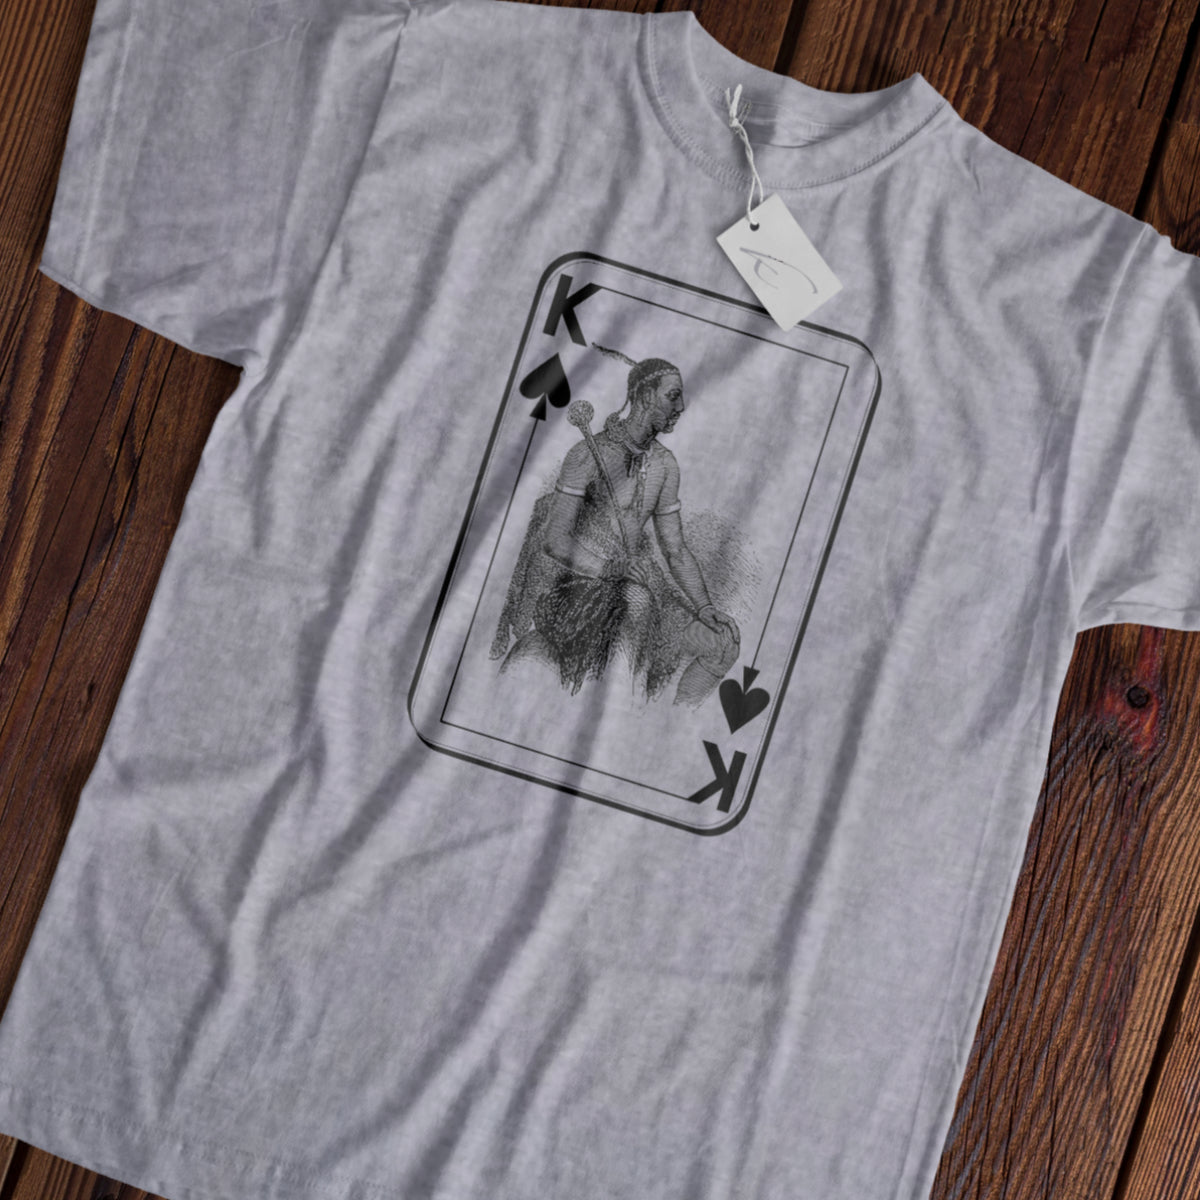 African King of Spades - Short-Sleeve Unisex T-Shirt